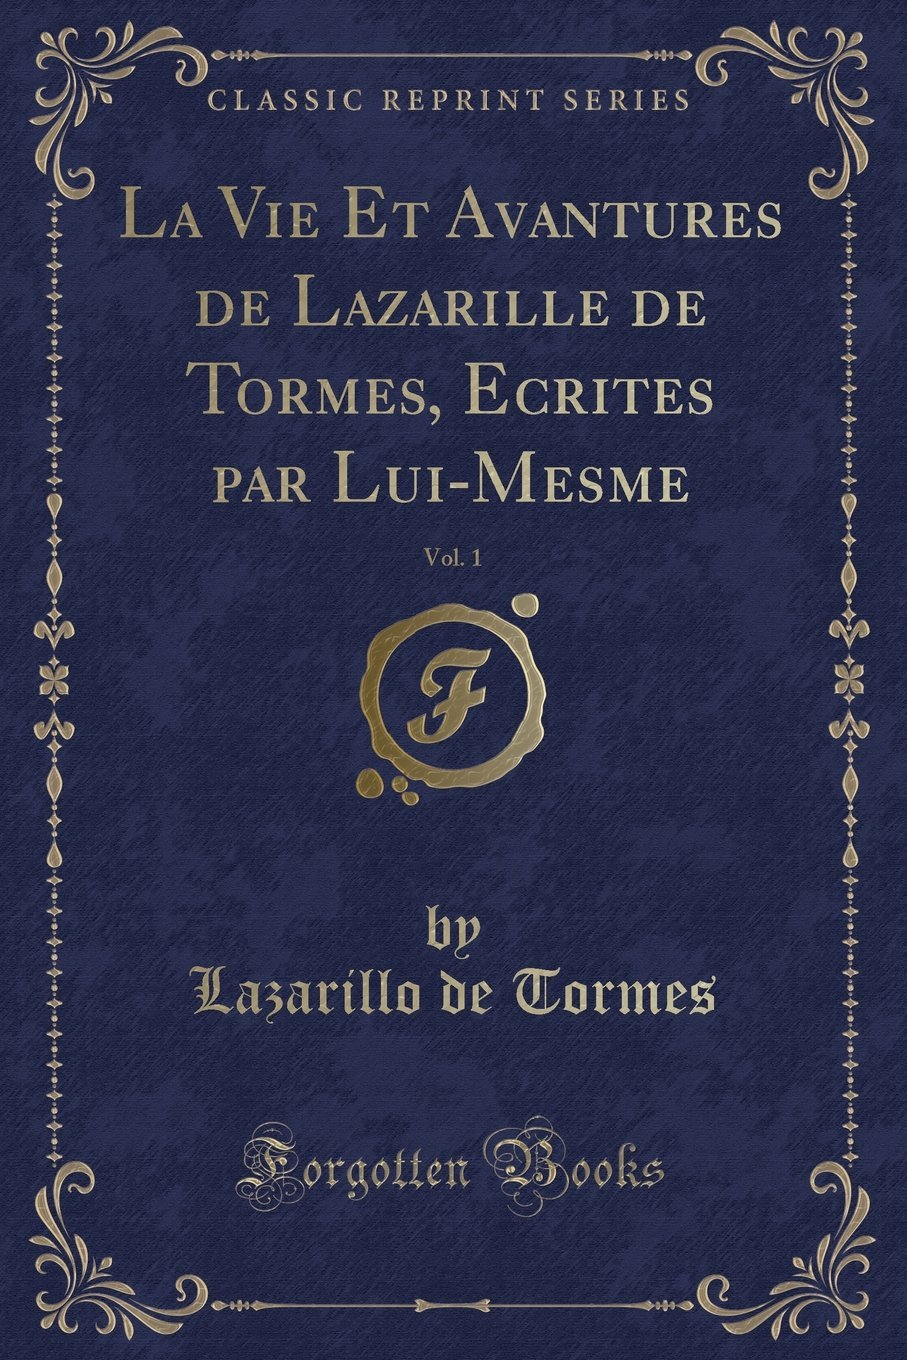 Download La Vie Et Avantures de Lazarille de Tormes, Ecrites par Lui-Mesme, Vol. 1 (Classic Reprint) (French Edition) ebook